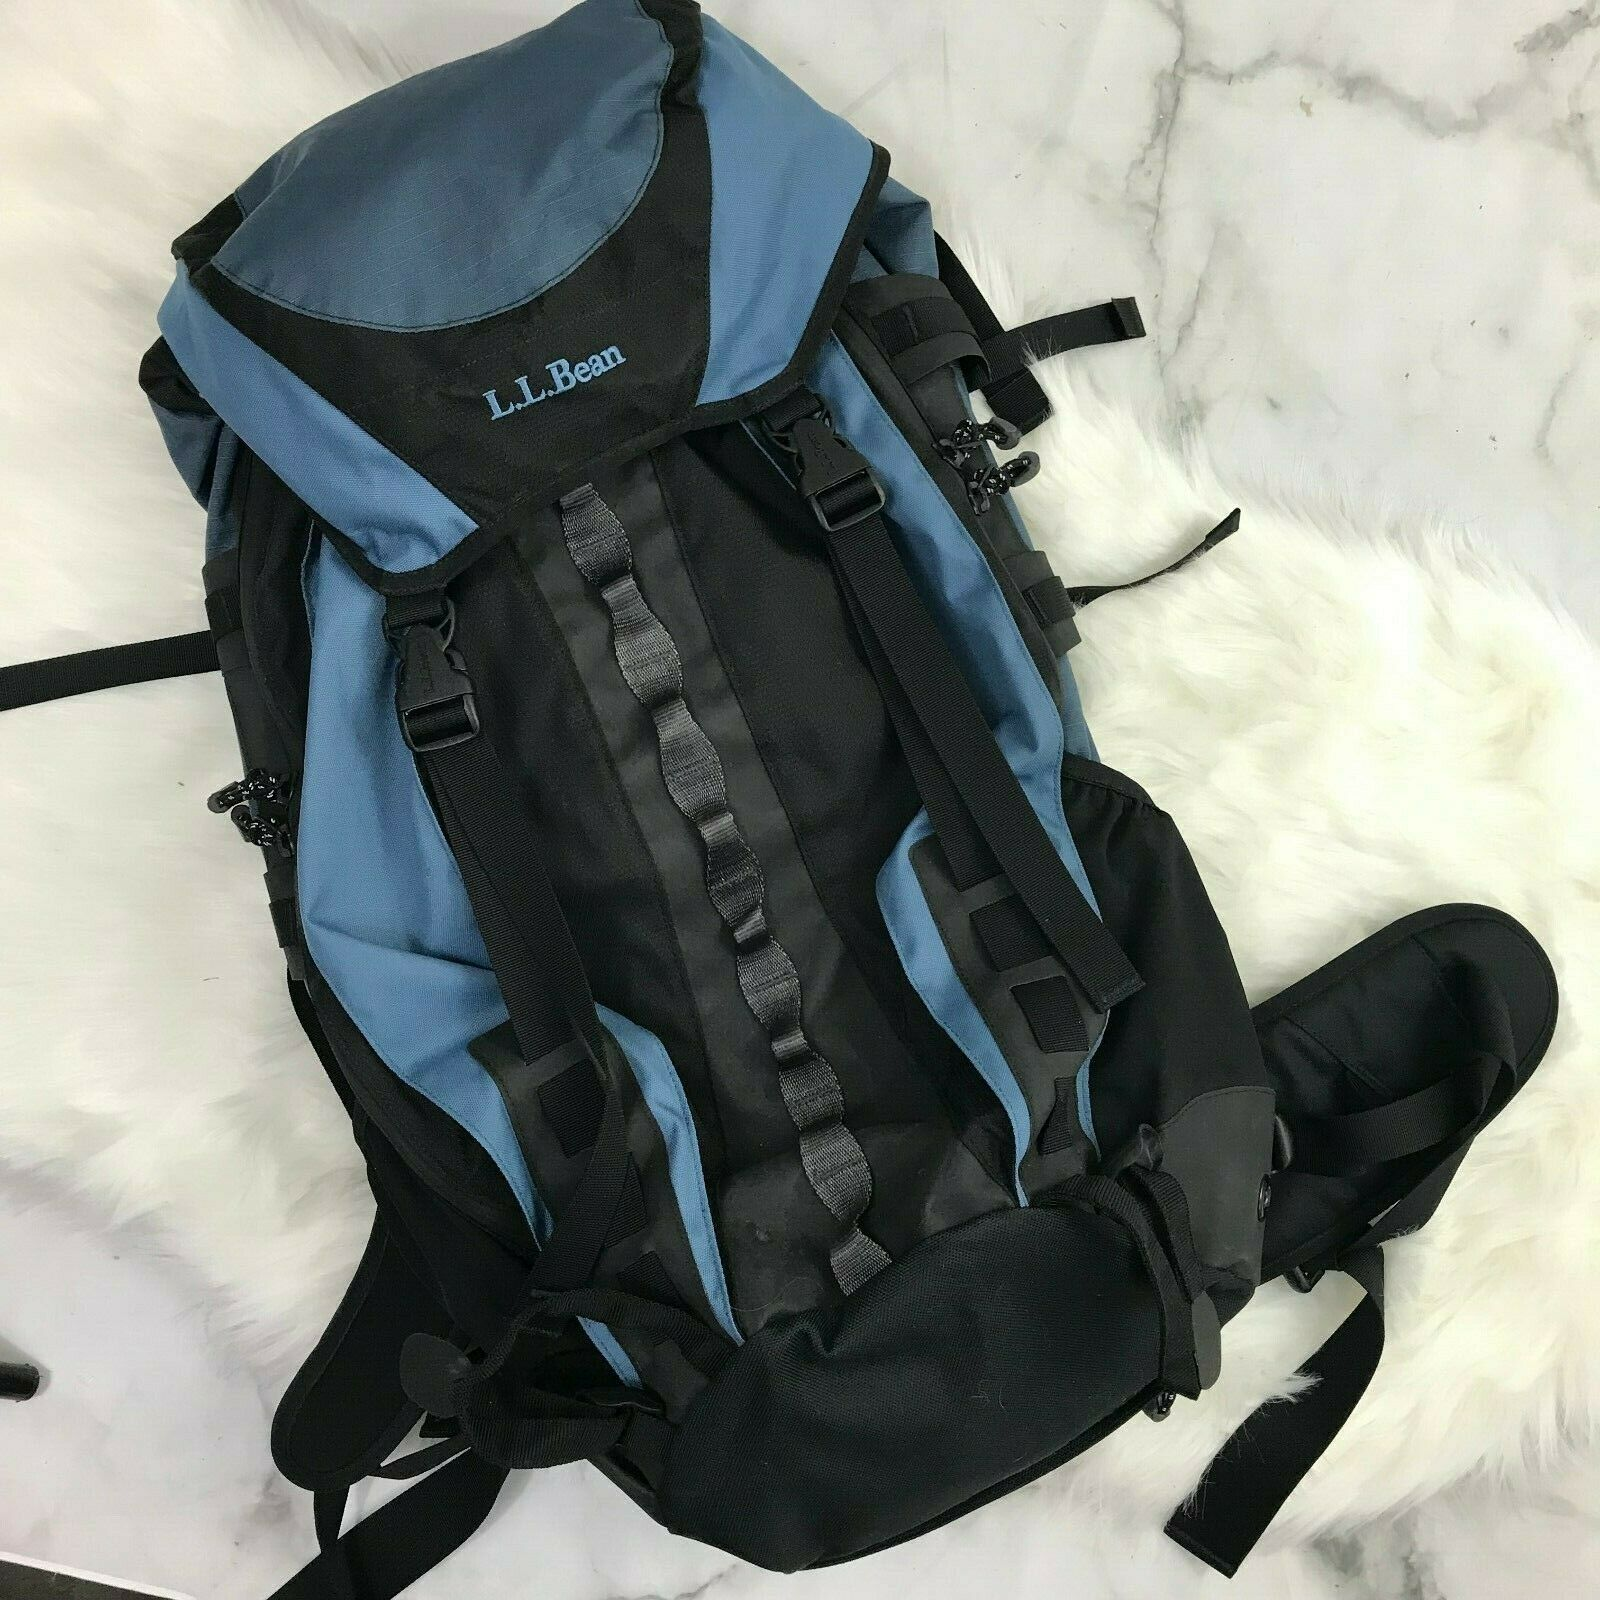 L.L. Bean Backpacking Mountain Pack 0XT21 Blau Hiking Pack Camping Outdoors EUC